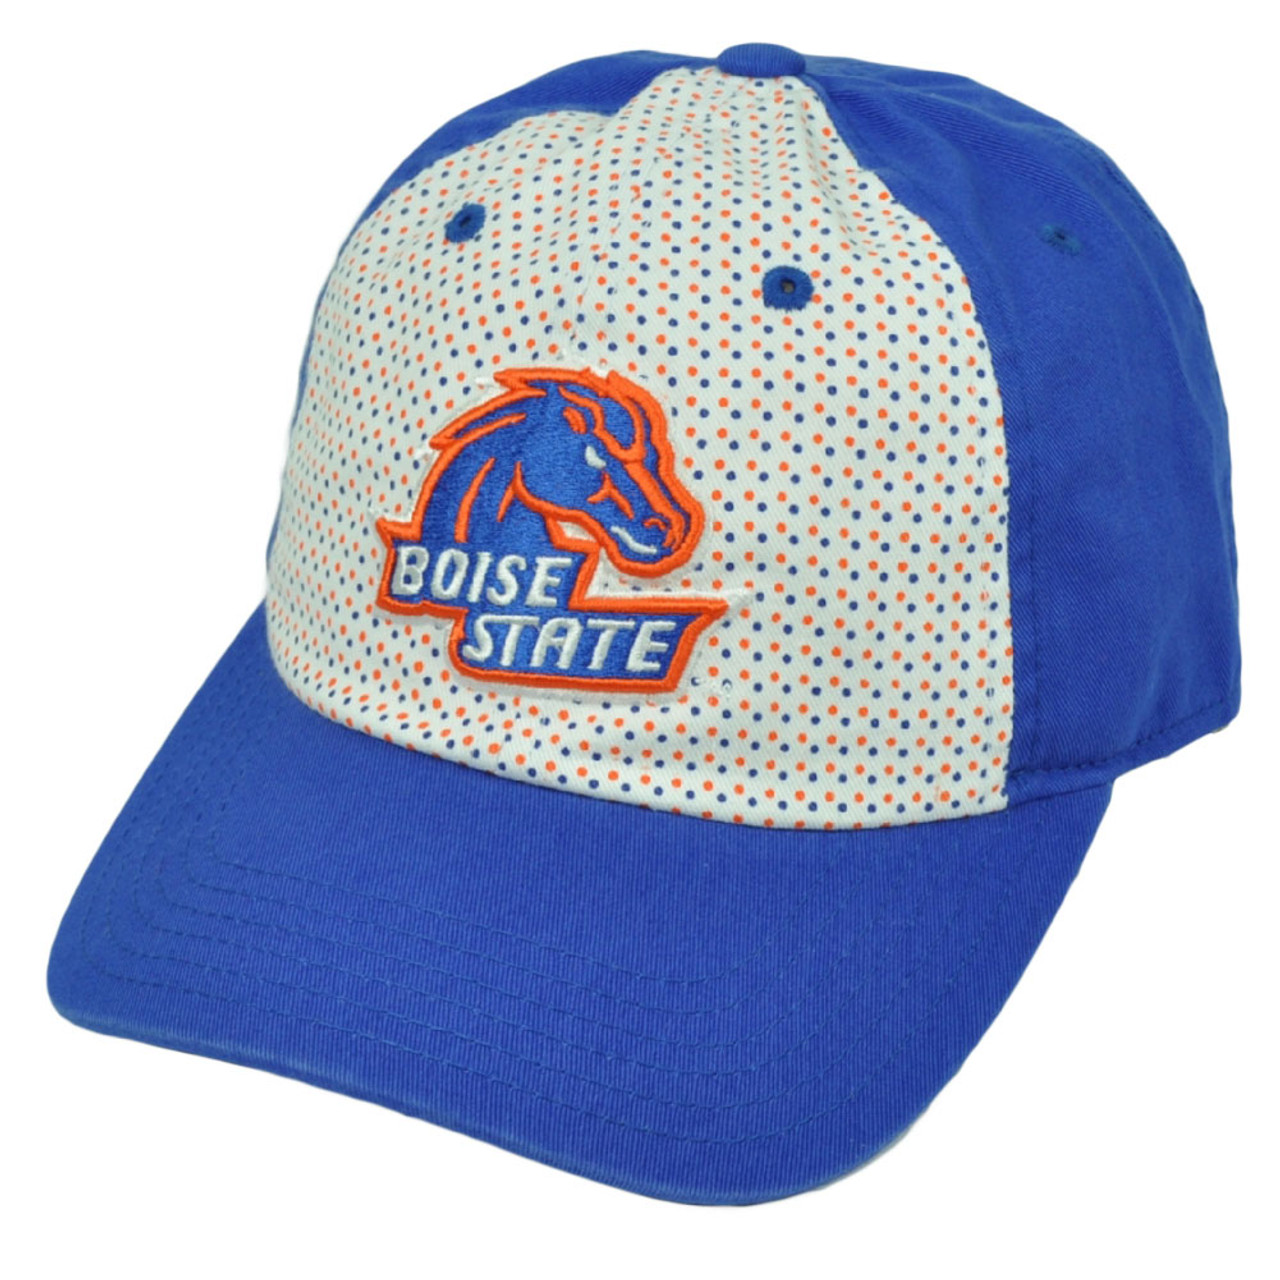 dfd179677 NCAA Boise State Broncos Polka Dots Blue White Relaxed Hat Cap Sun Buckle  Ladies